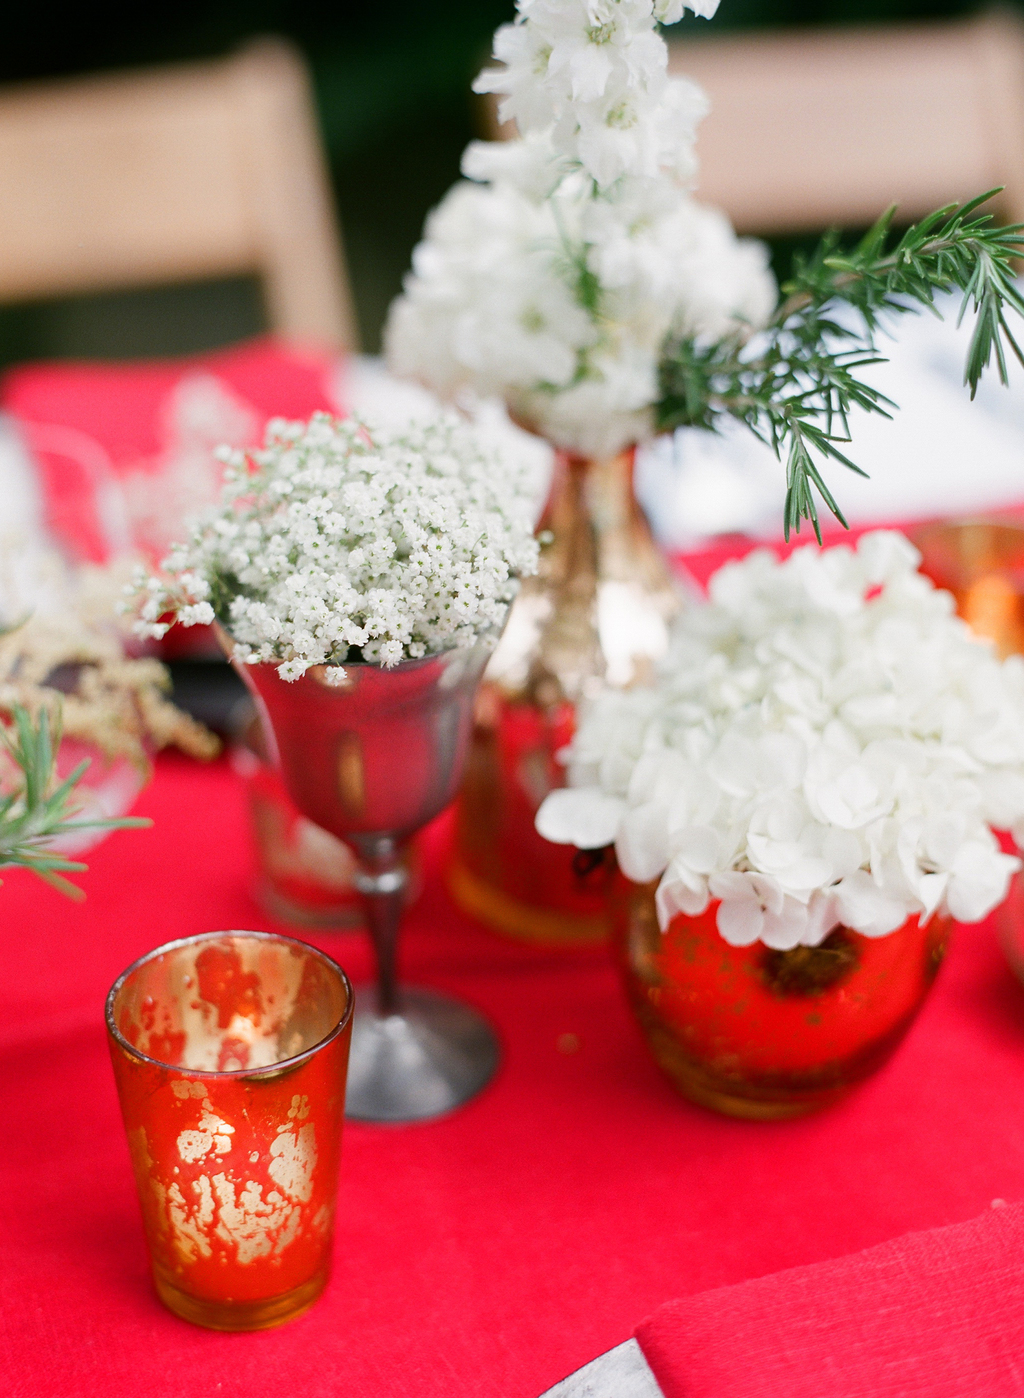 Styled-wedding-santa-barbara-chic-beaux-arts-photographie-italian-bohemian-wedding-venue-table-setting-red-white-flowers-antique-glass-067.full